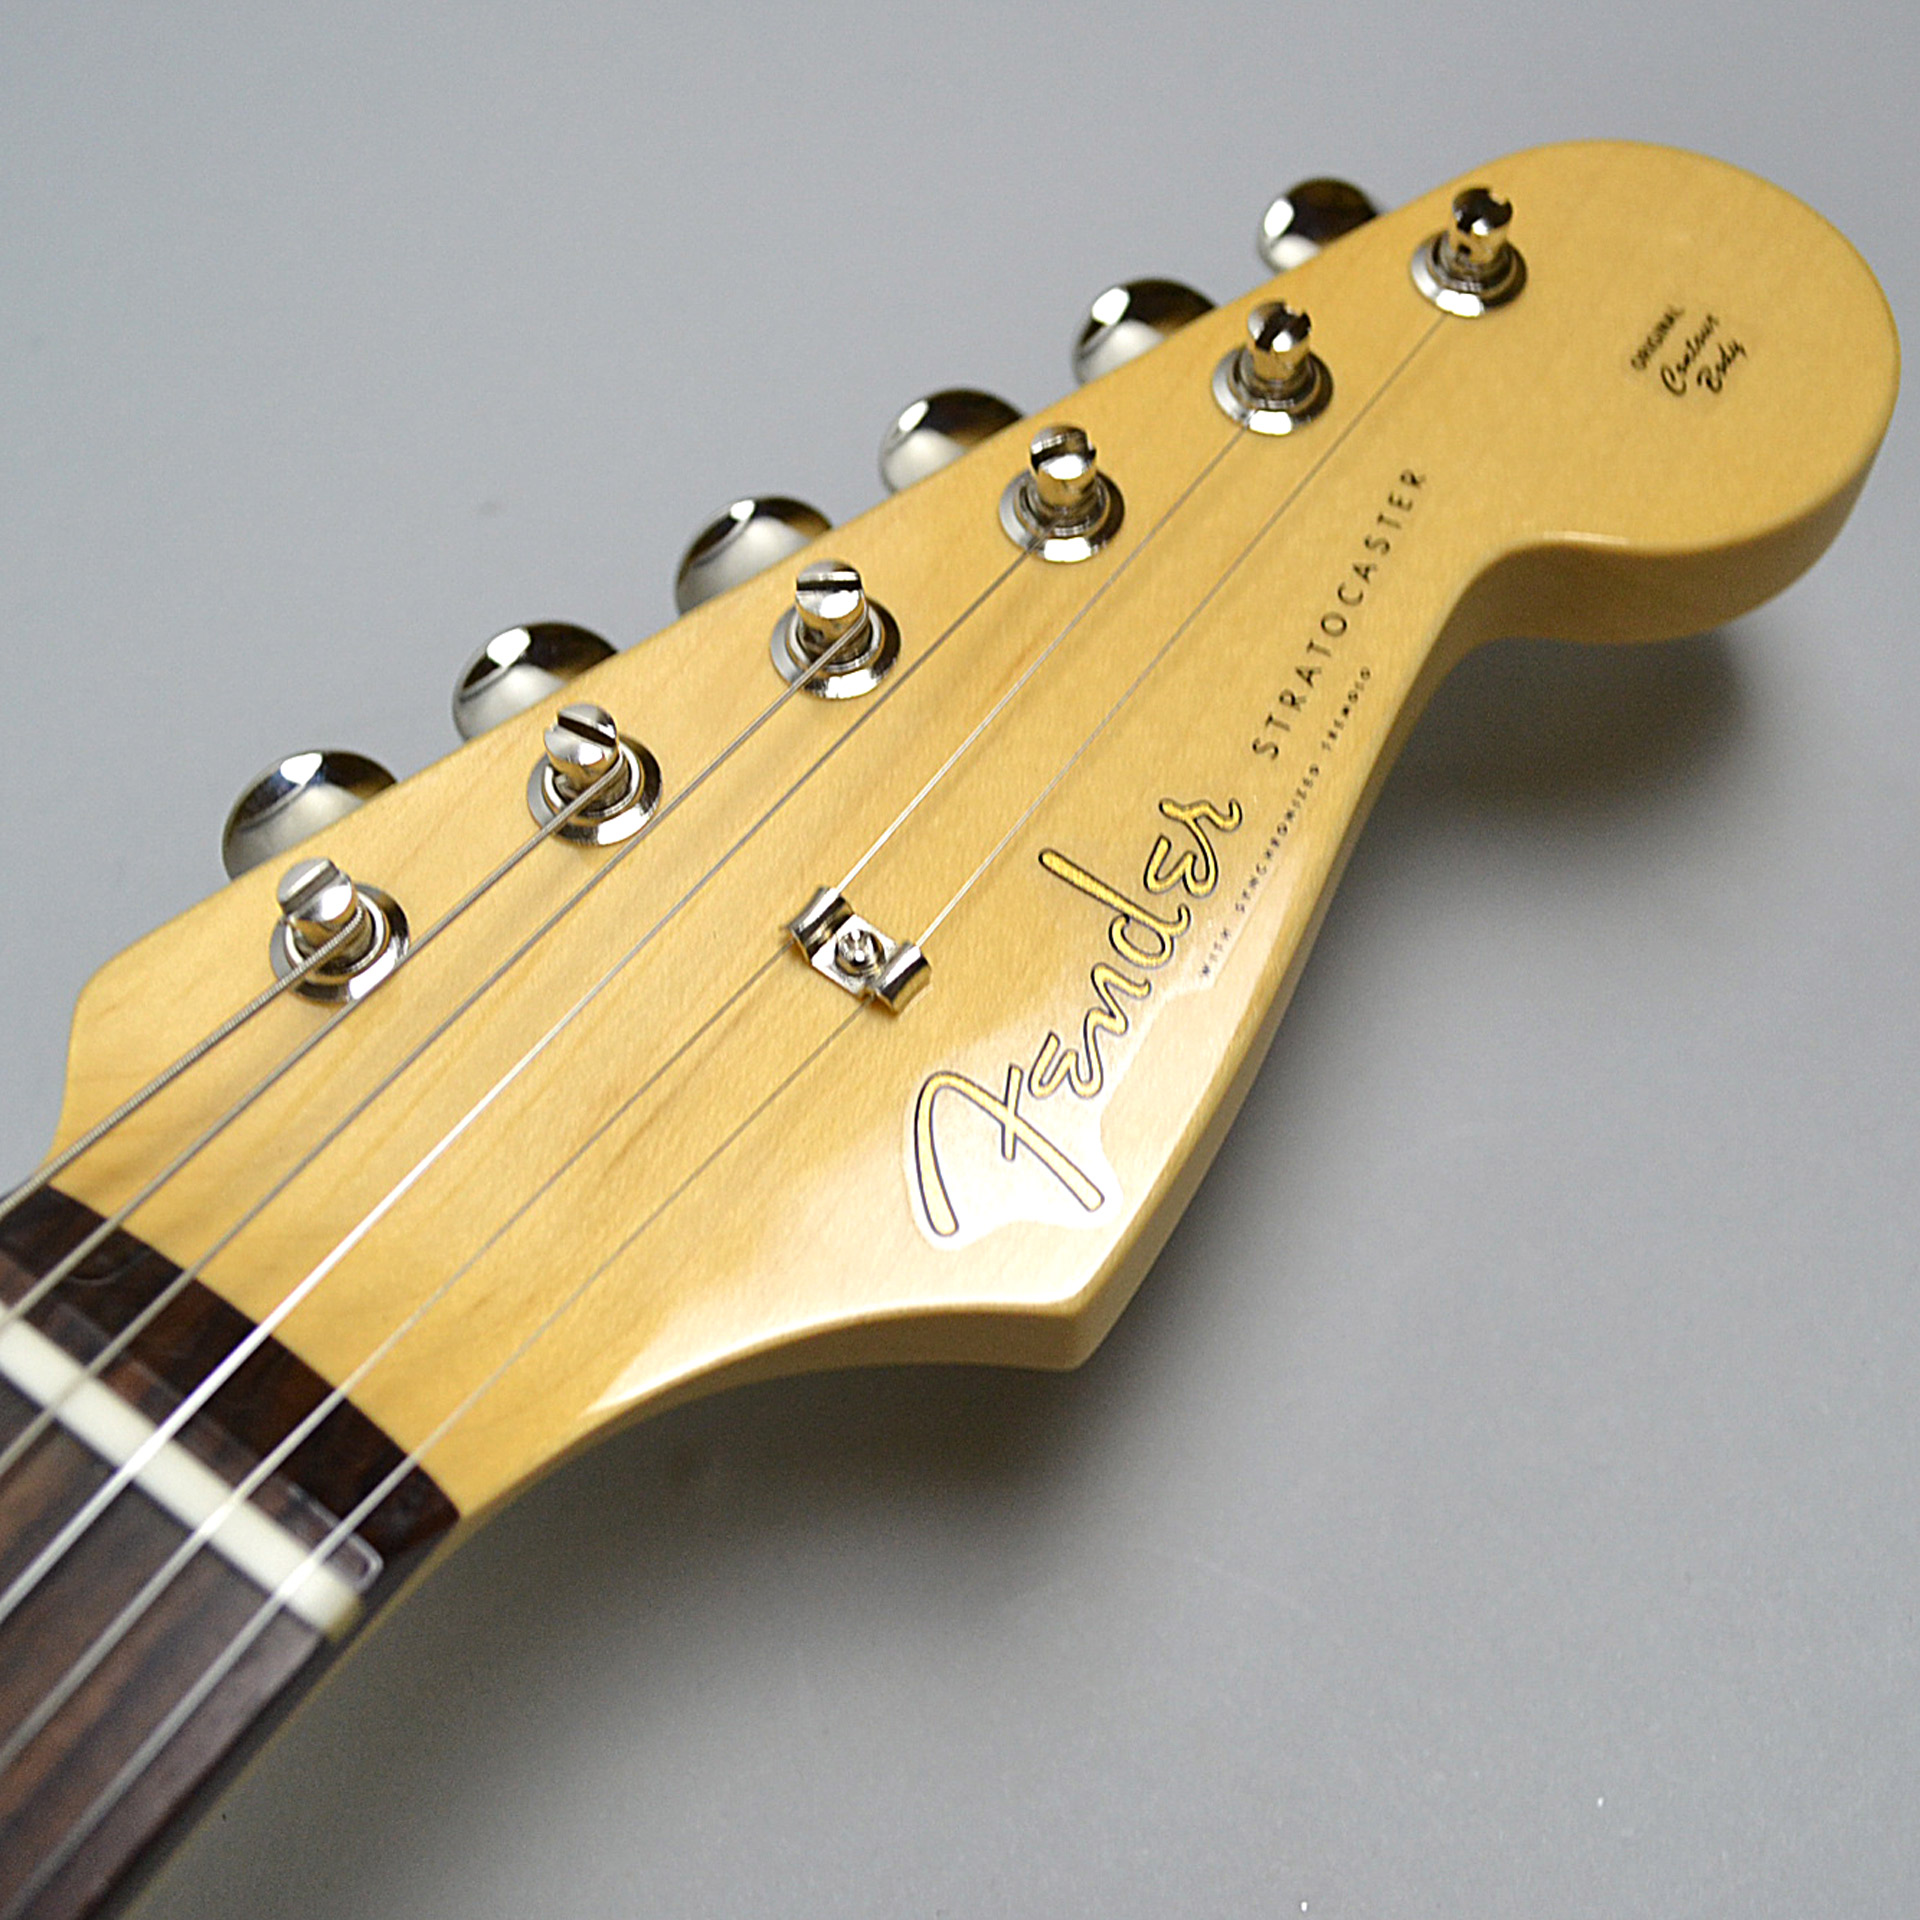 MADE IN JAPAN HYBRID 60S STRATOCASTERのヘッド画像